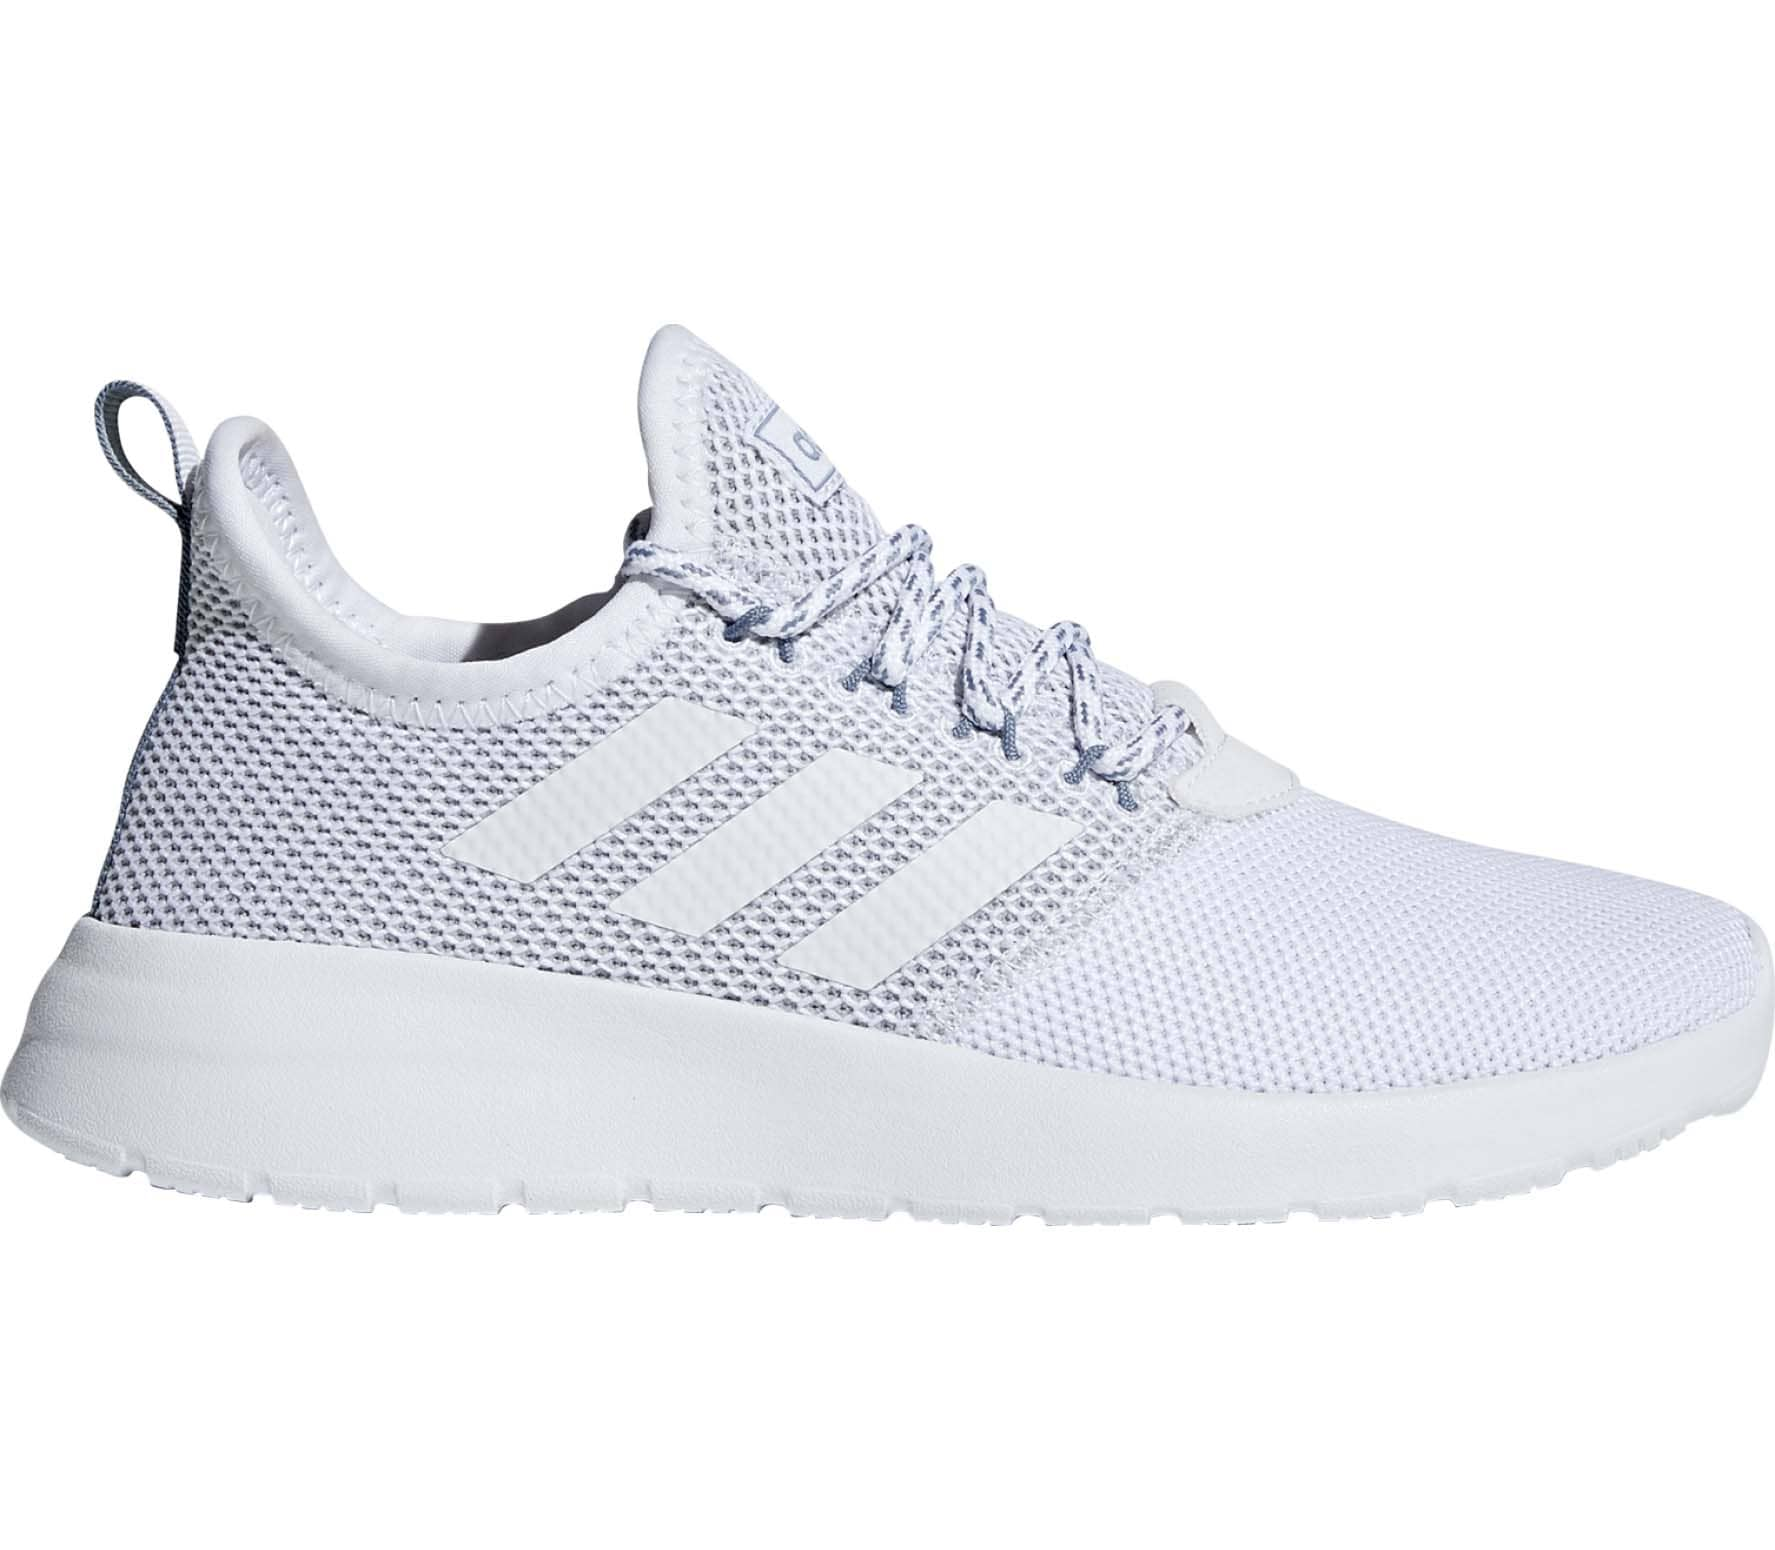 586f03dd4f4120 adidas Performance - Lite Racer Rbn women s running shoes (white ...